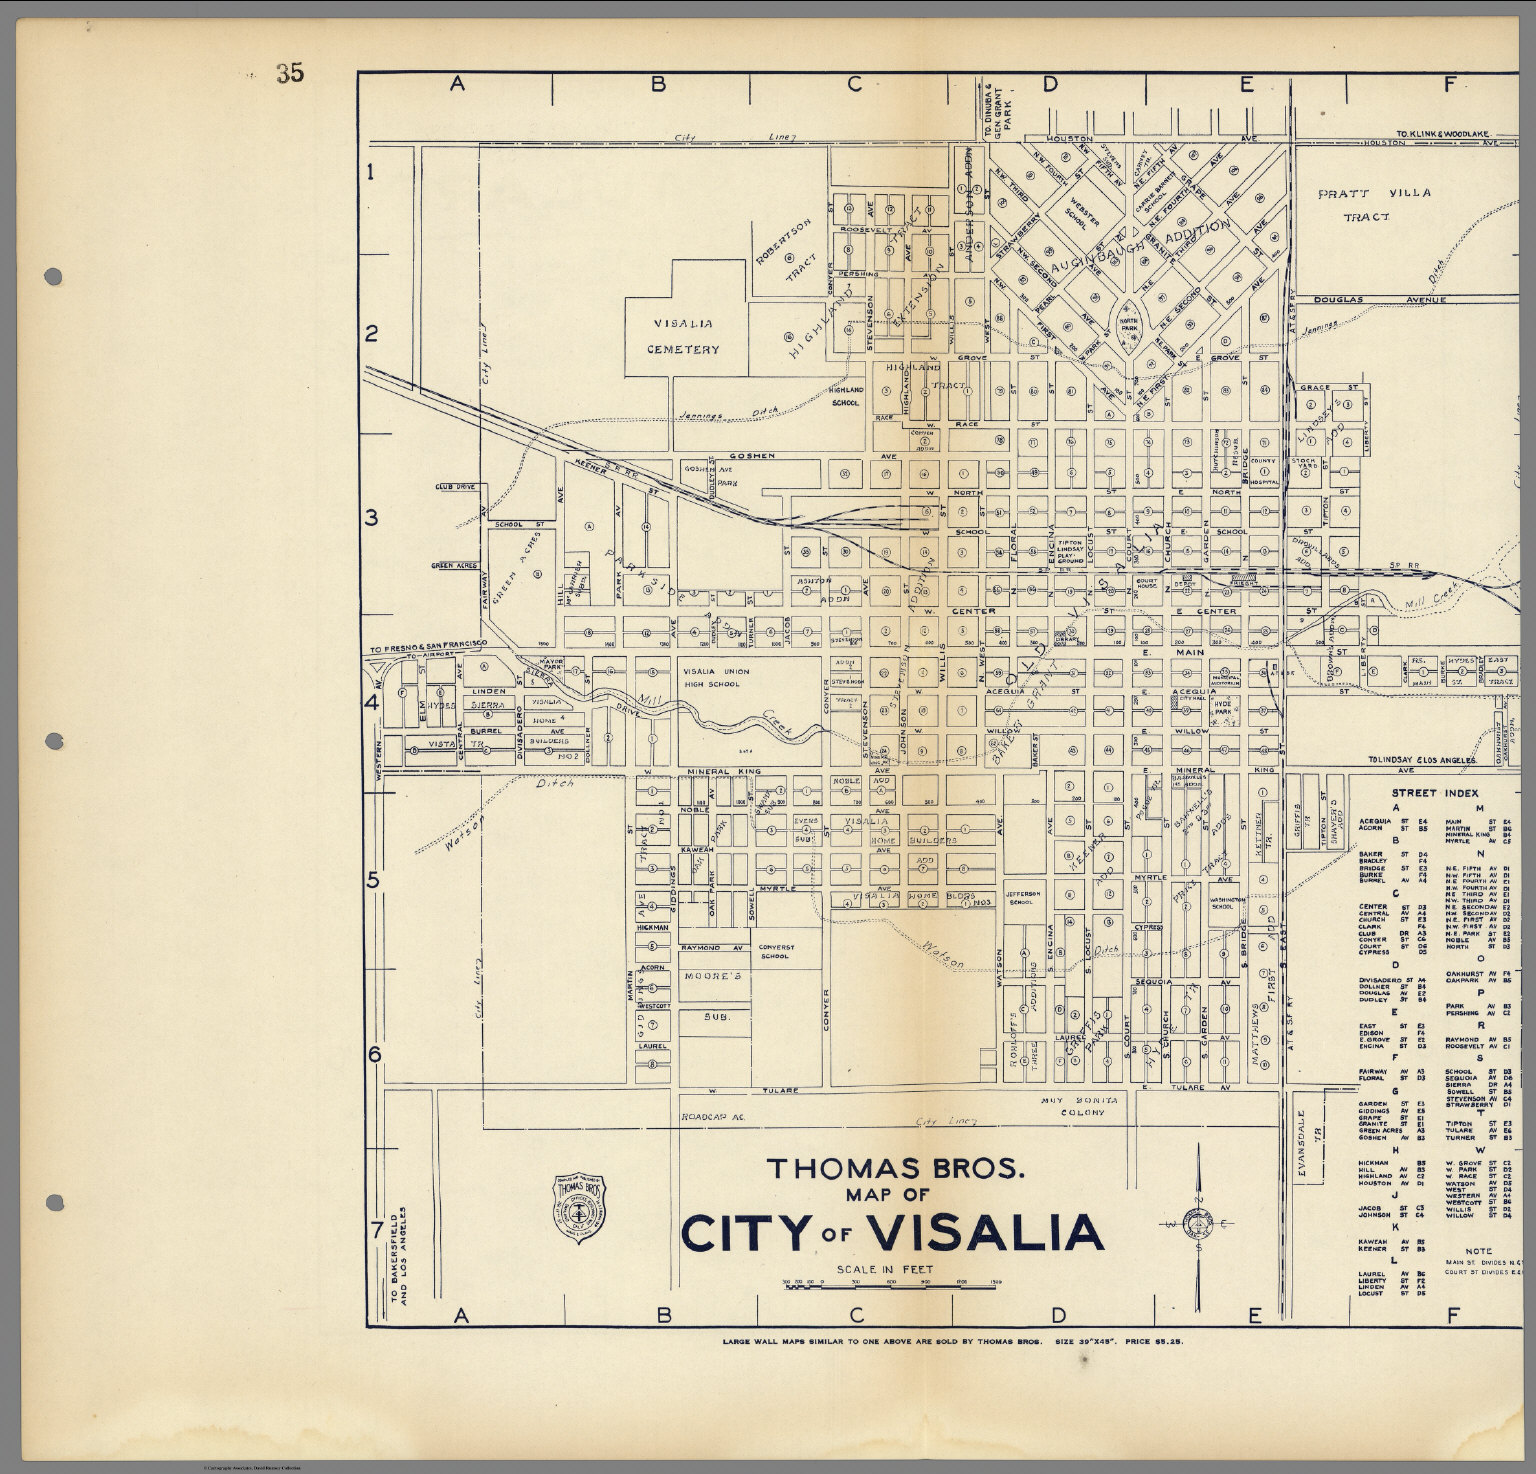 Thomas Bros Map of City of Visalia California David Rumsey